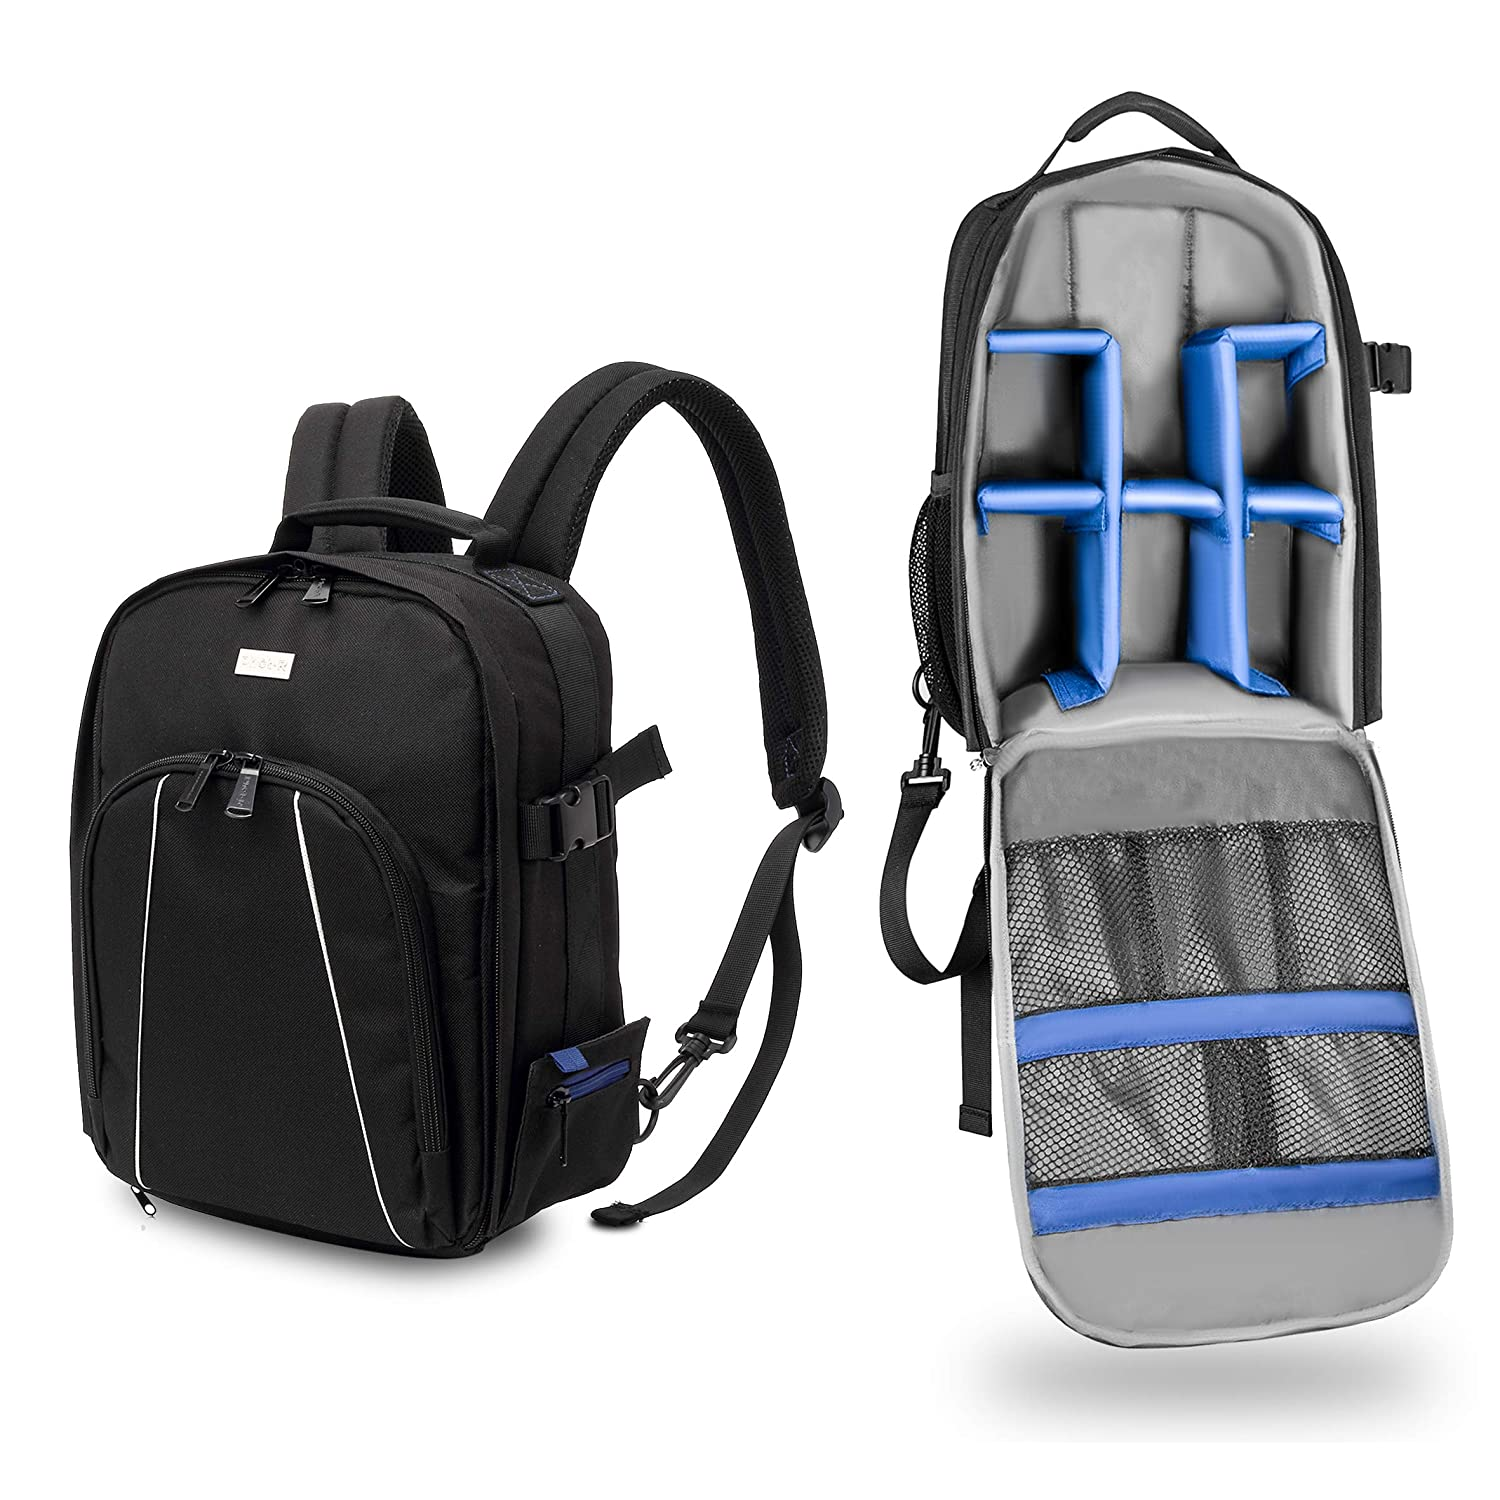 Phot-R Camera Backpack with Tripod Strap Holder, 34x26x17cm Water & Shock Resistant Padded Dividers Inserts & Rain Cover